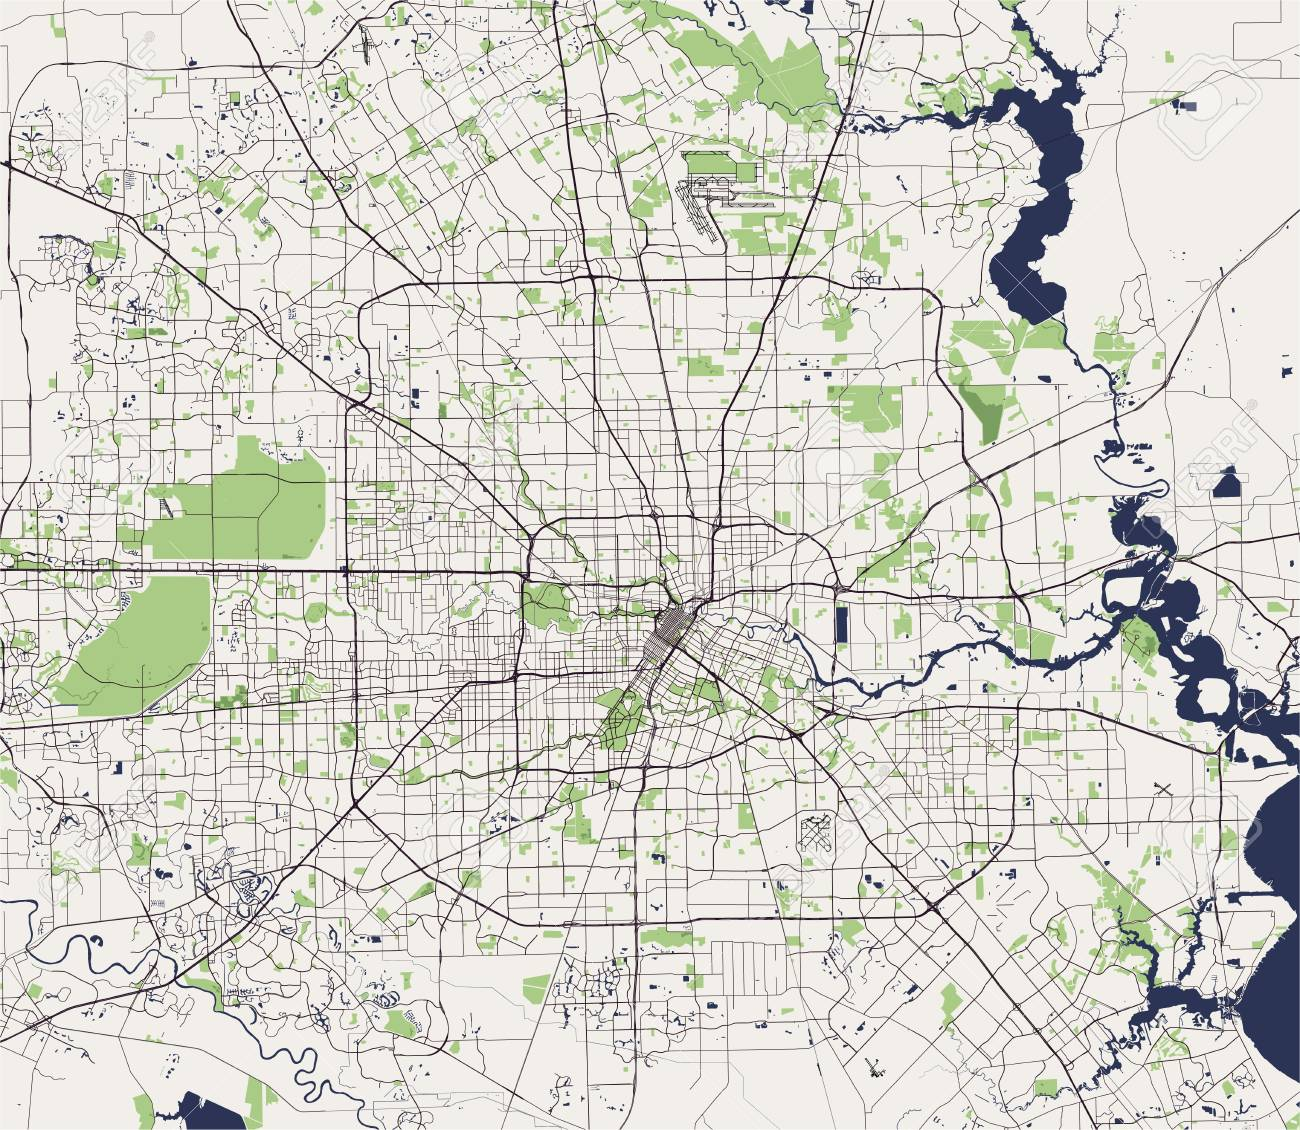 Map State Of Texas.Map Of The City Of Houston U S State Of Texas Usa